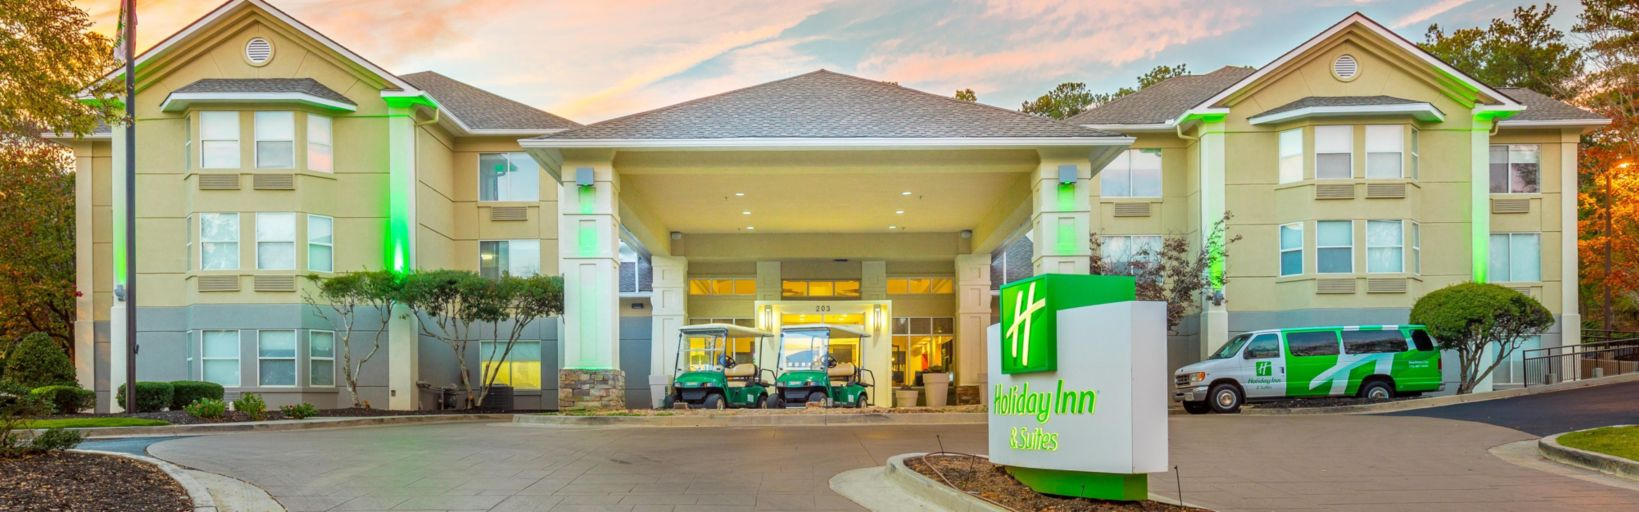 Welcome To The Holiday Inn Suites Peachtree City